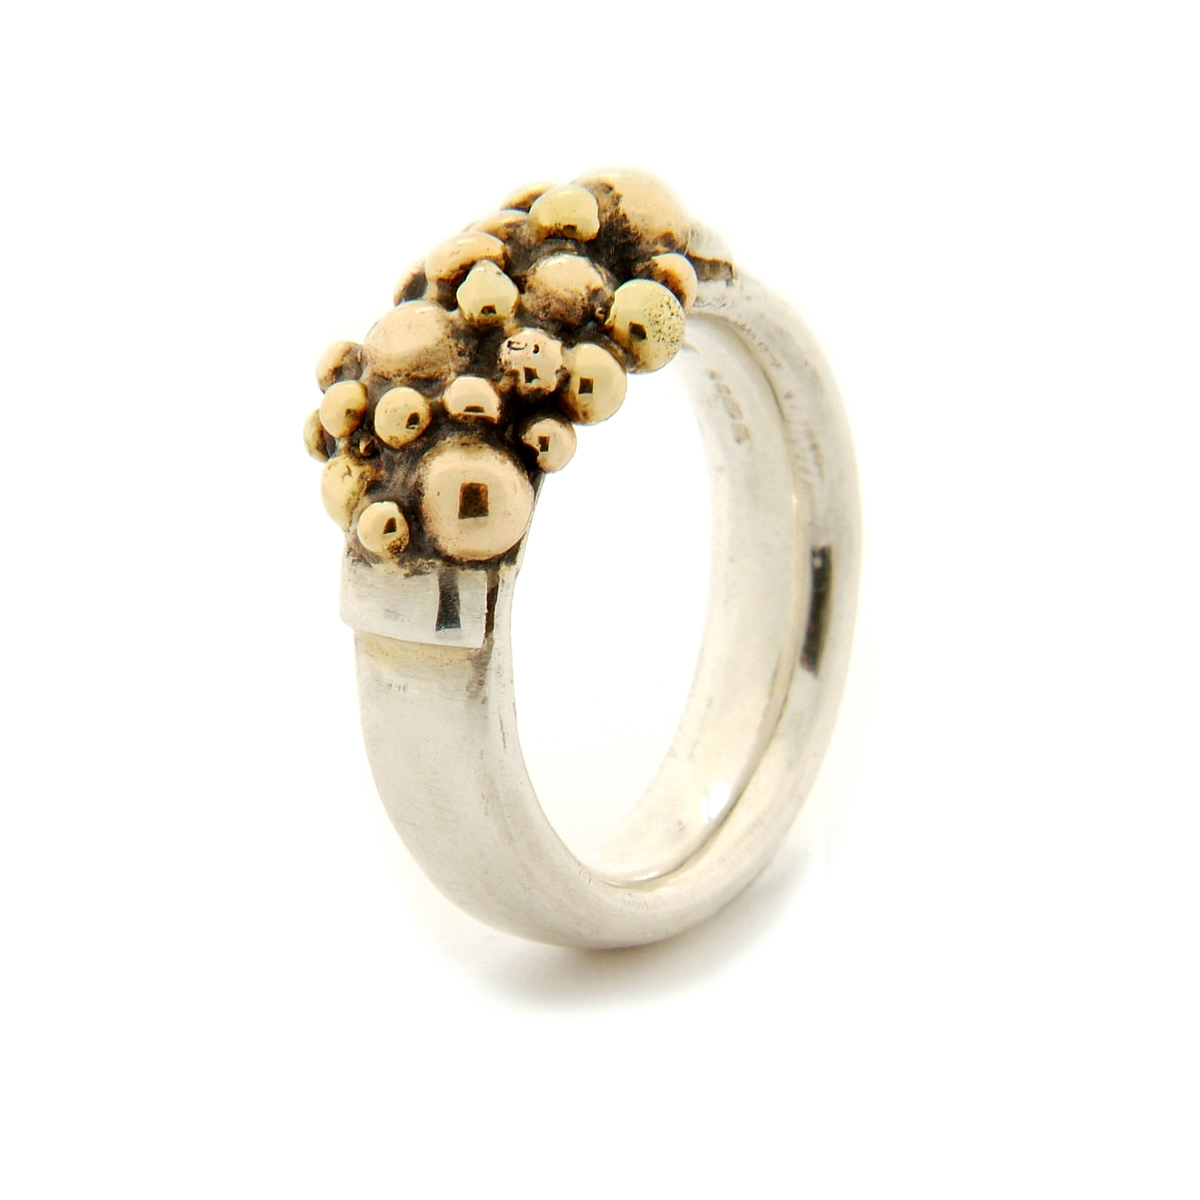 Molecule semi ring silver and 9ct gold